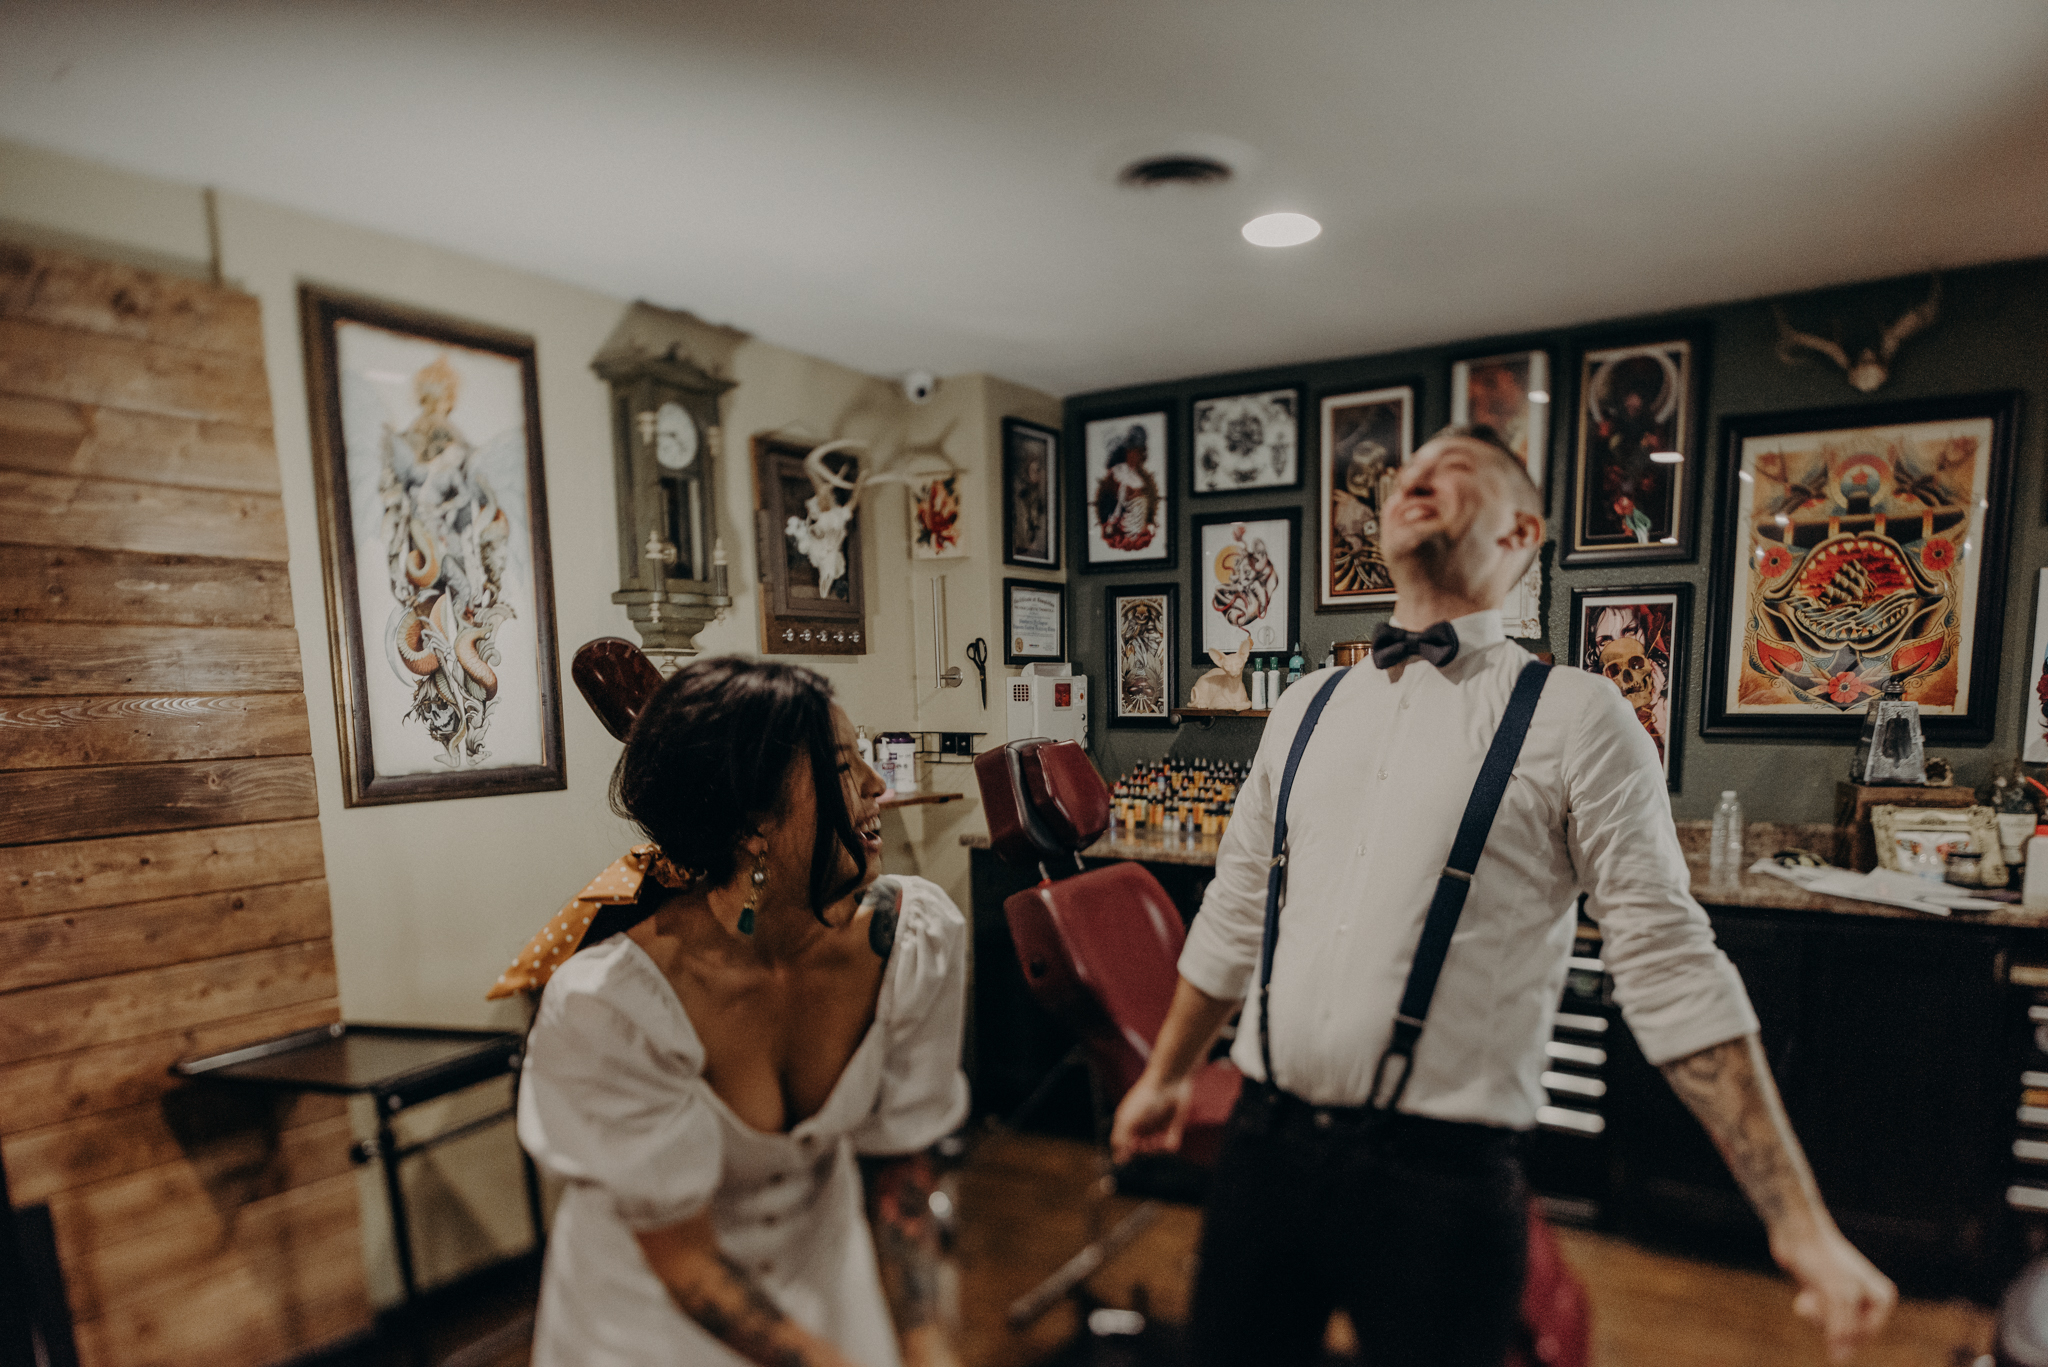 Wedding Photographer in LA - Los Angeles Wedding Photos - Tattoo Shop Engagement Session - IsaiahAndTaylor.com-012.jpg